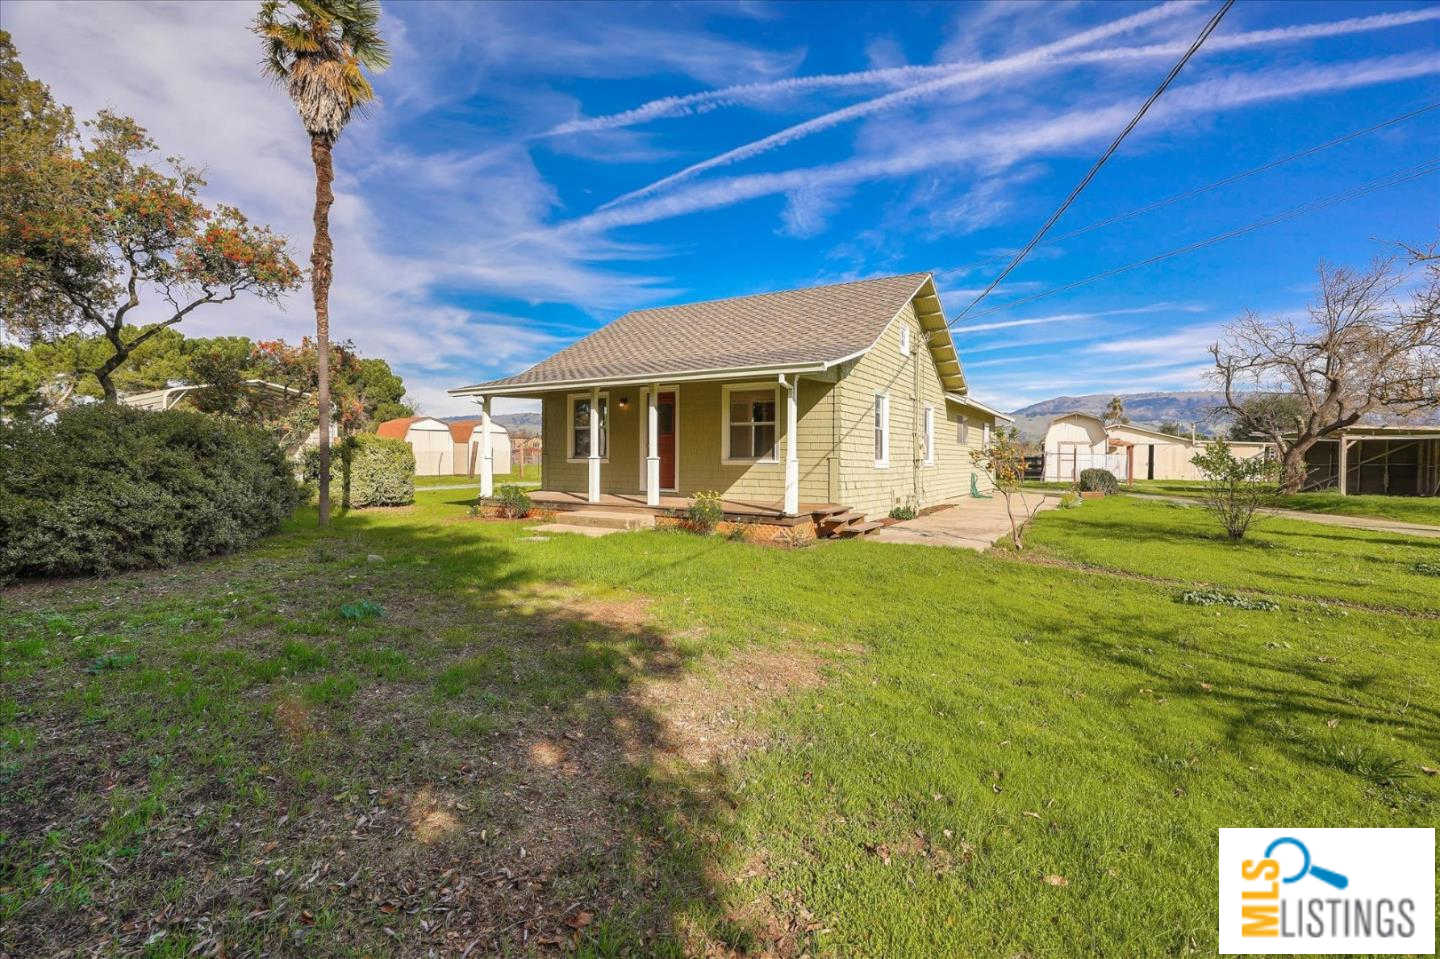 13370 Llagas Avenue, San Martin, CA 95046 now has a new price of $1,099,999!